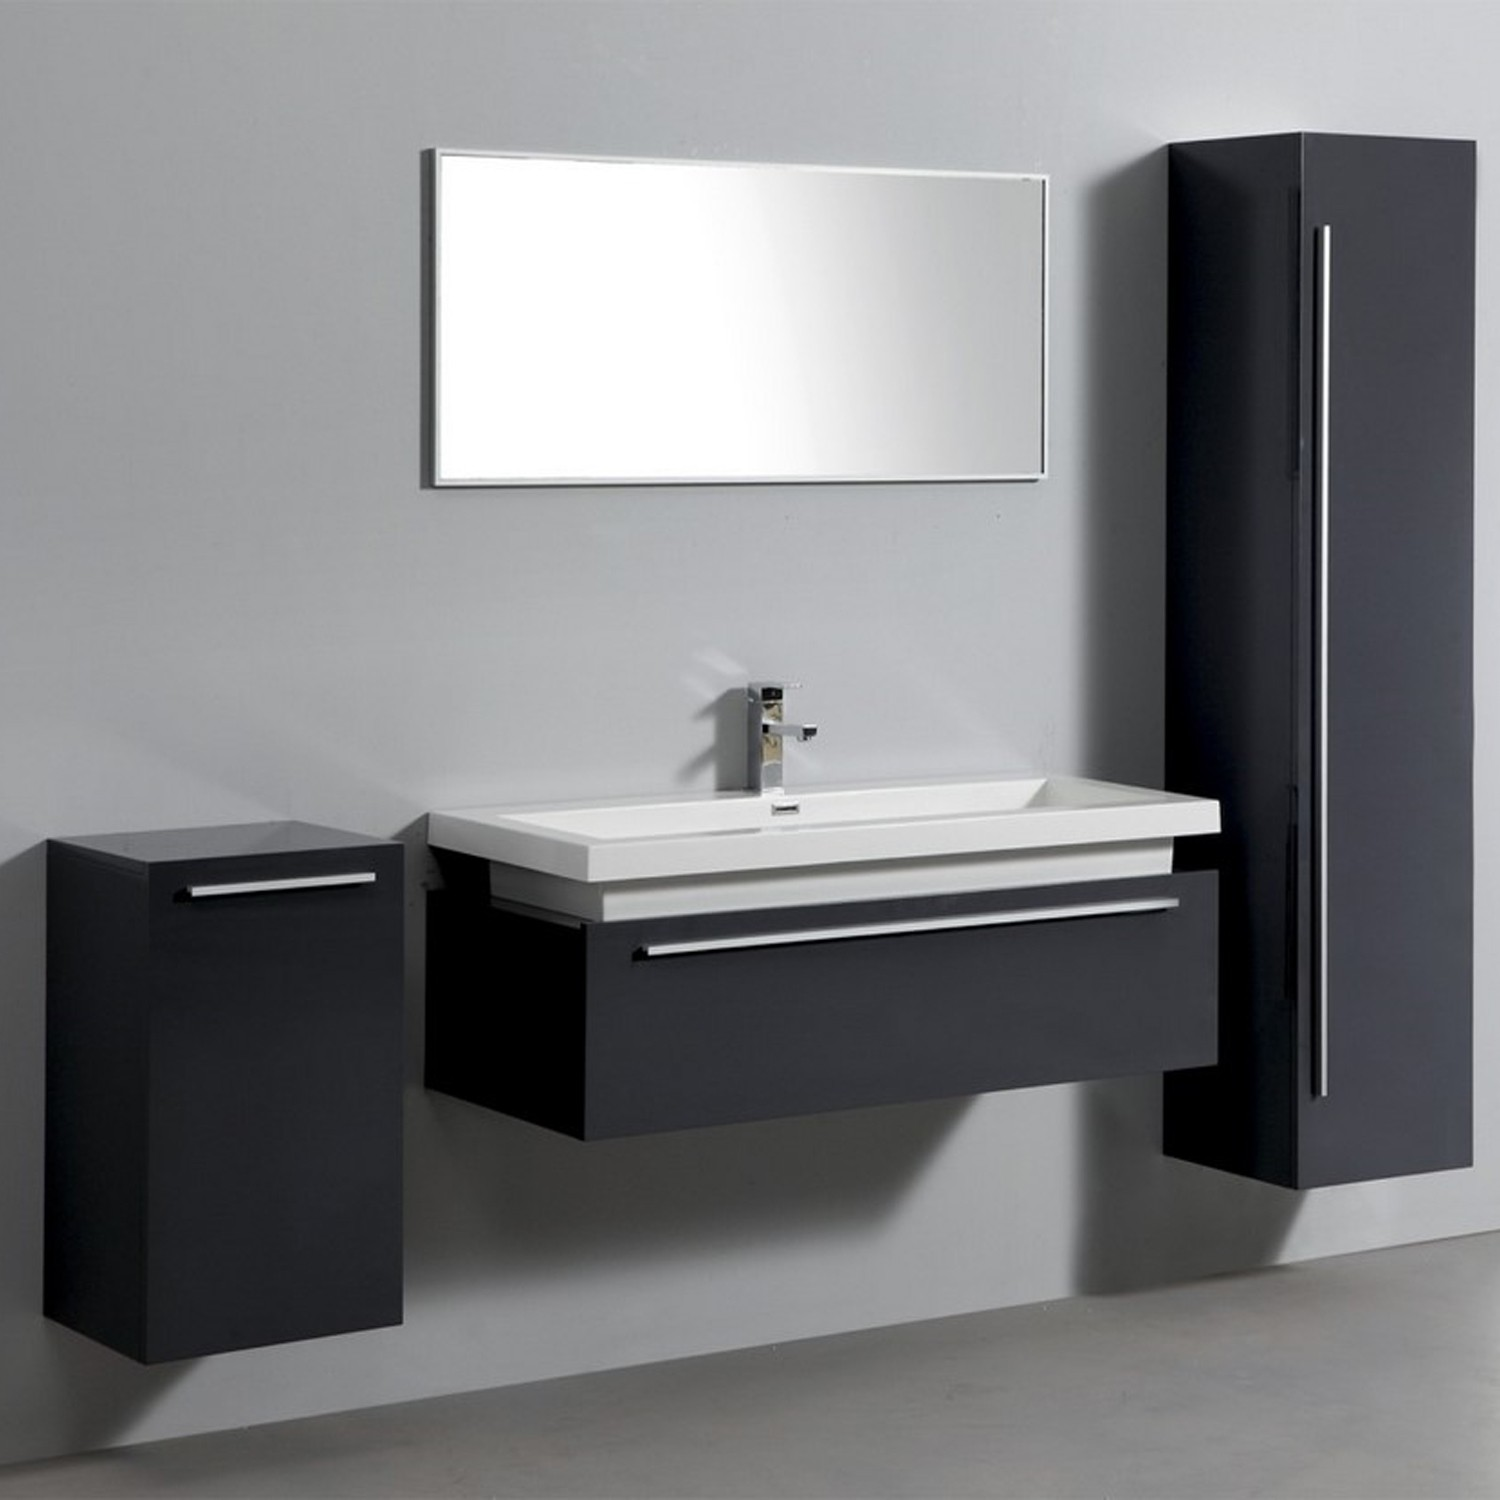 import diffusion ensemble complet meuble de salle de bain rio 1 vasque 1 miroir gris laqu. Black Bedroom Furniture Sets. Home Design Ideas